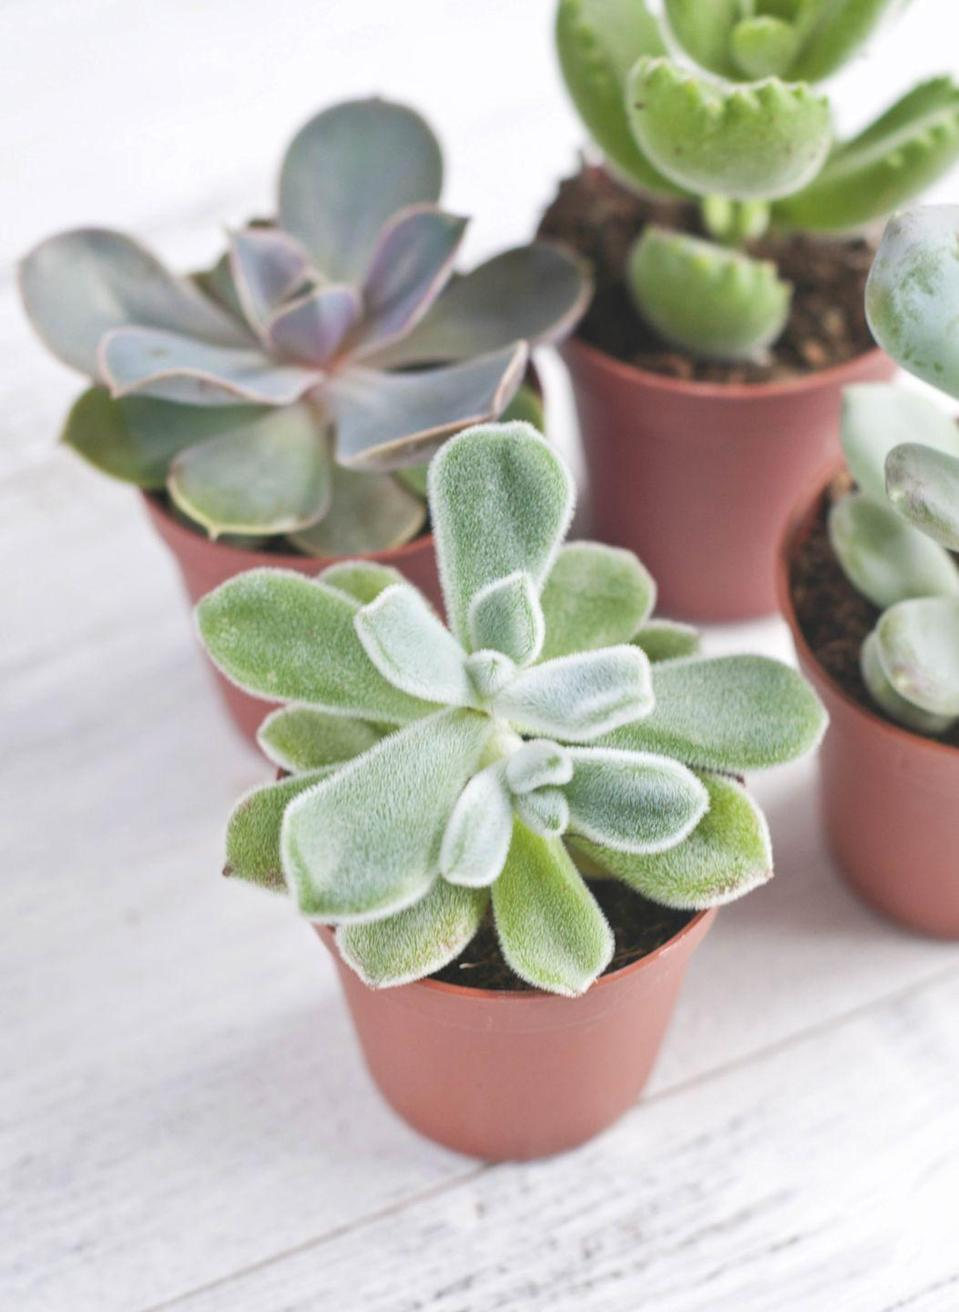 """<p><a class=""""link rapid-noclick-resp"""" href=""""https://www.amazon.com/Succulent-Plants-Fully-Rooted-Planter/dp/B079RKPQSP/?tag=syn-yahoo-20&ascsubtag=%5Bartid%7C10057.g.3716%5Bsrc%7Cyahoo-us"""" rel=""""nofollow noopener"""" target=""""_blank"""" data-ylk=""""slk:BUY NOW"""">BUY NOW</a> <strong><em>$17 for 5, amazon.com</em></strong></p><p>These waxy plants actually store water in their thick leaves. Therefore, they typically only require weekly waterings and enjoy sunlight and dry air.</p>"""